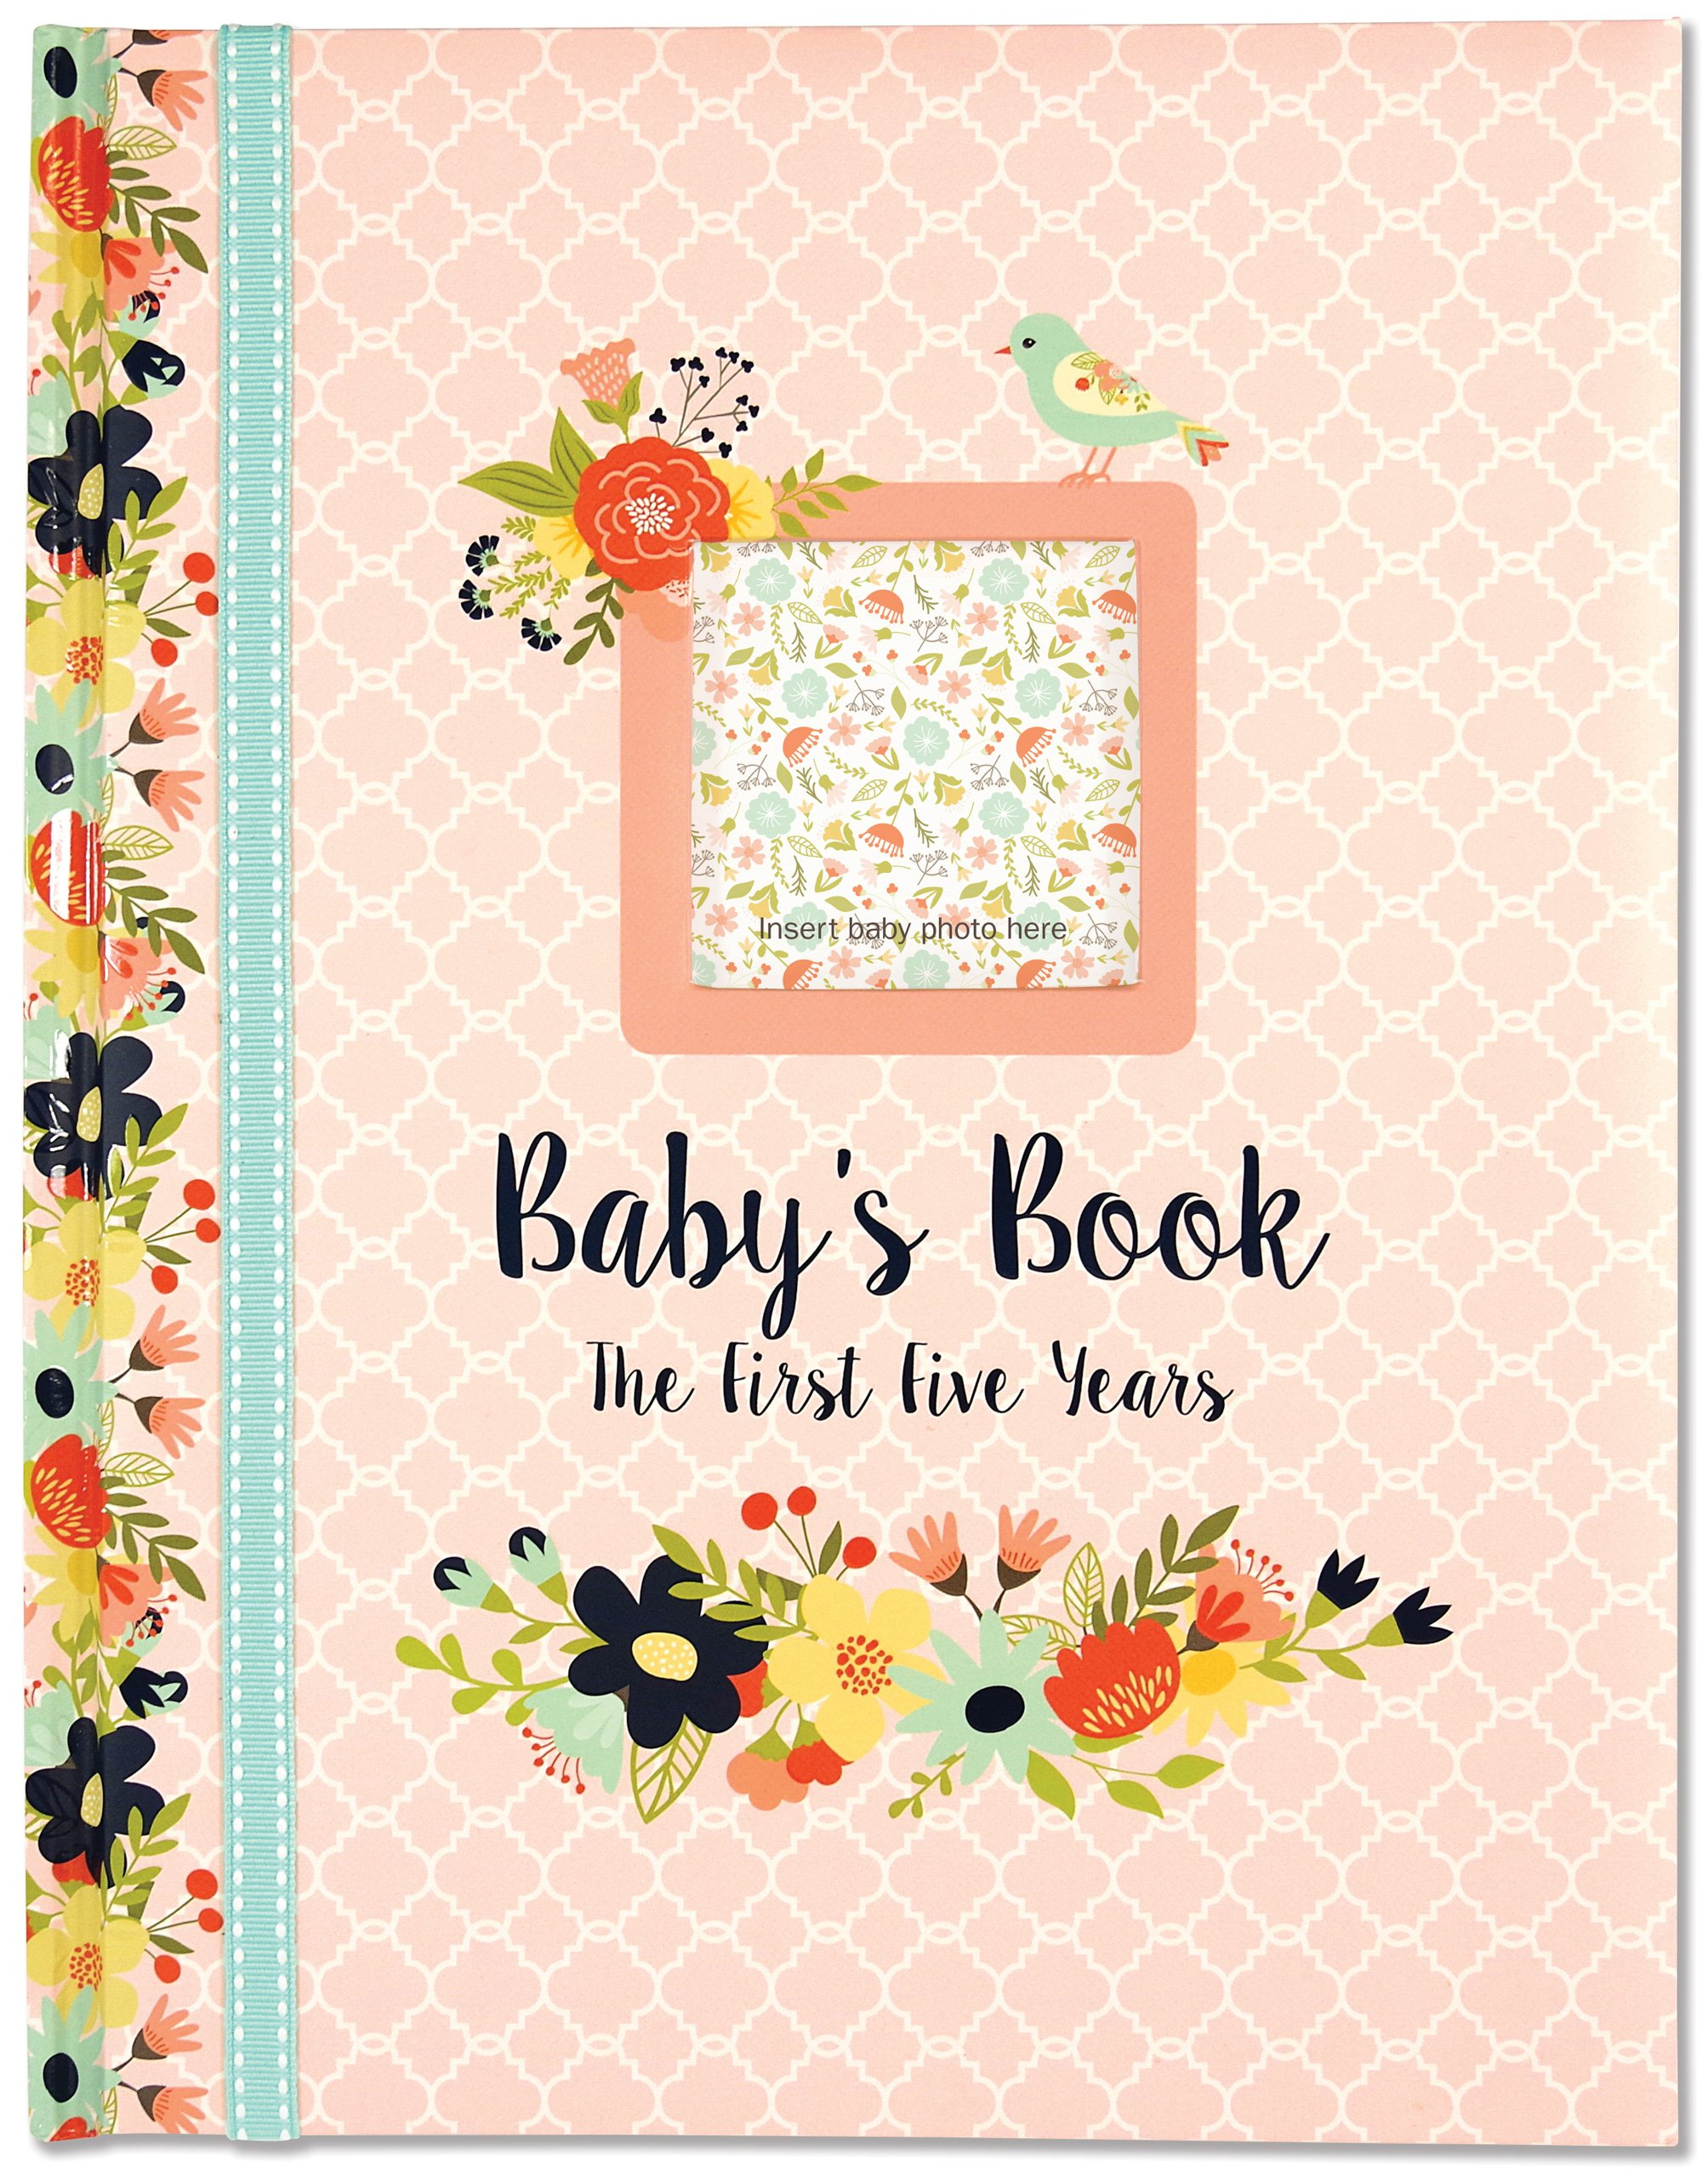 Read Online Baby's Book: The First Five Years (Floral design) ebook